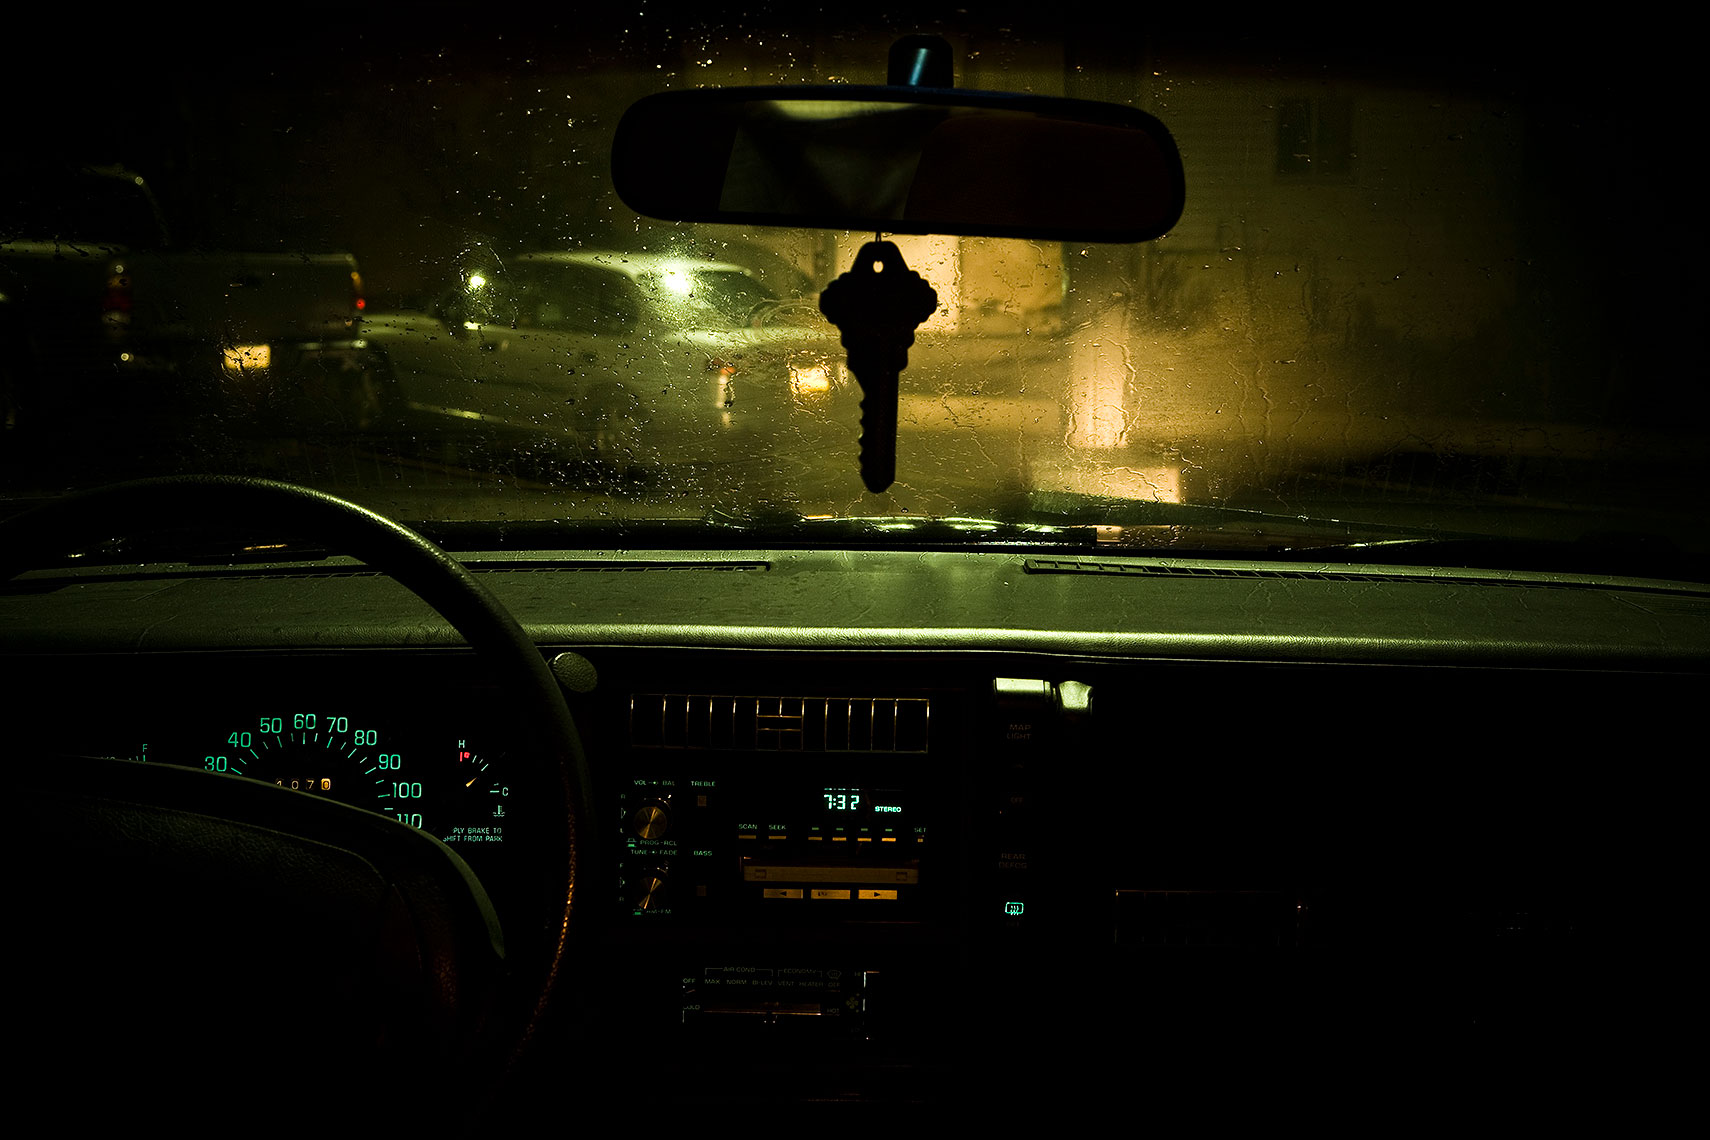 night view from inside old car